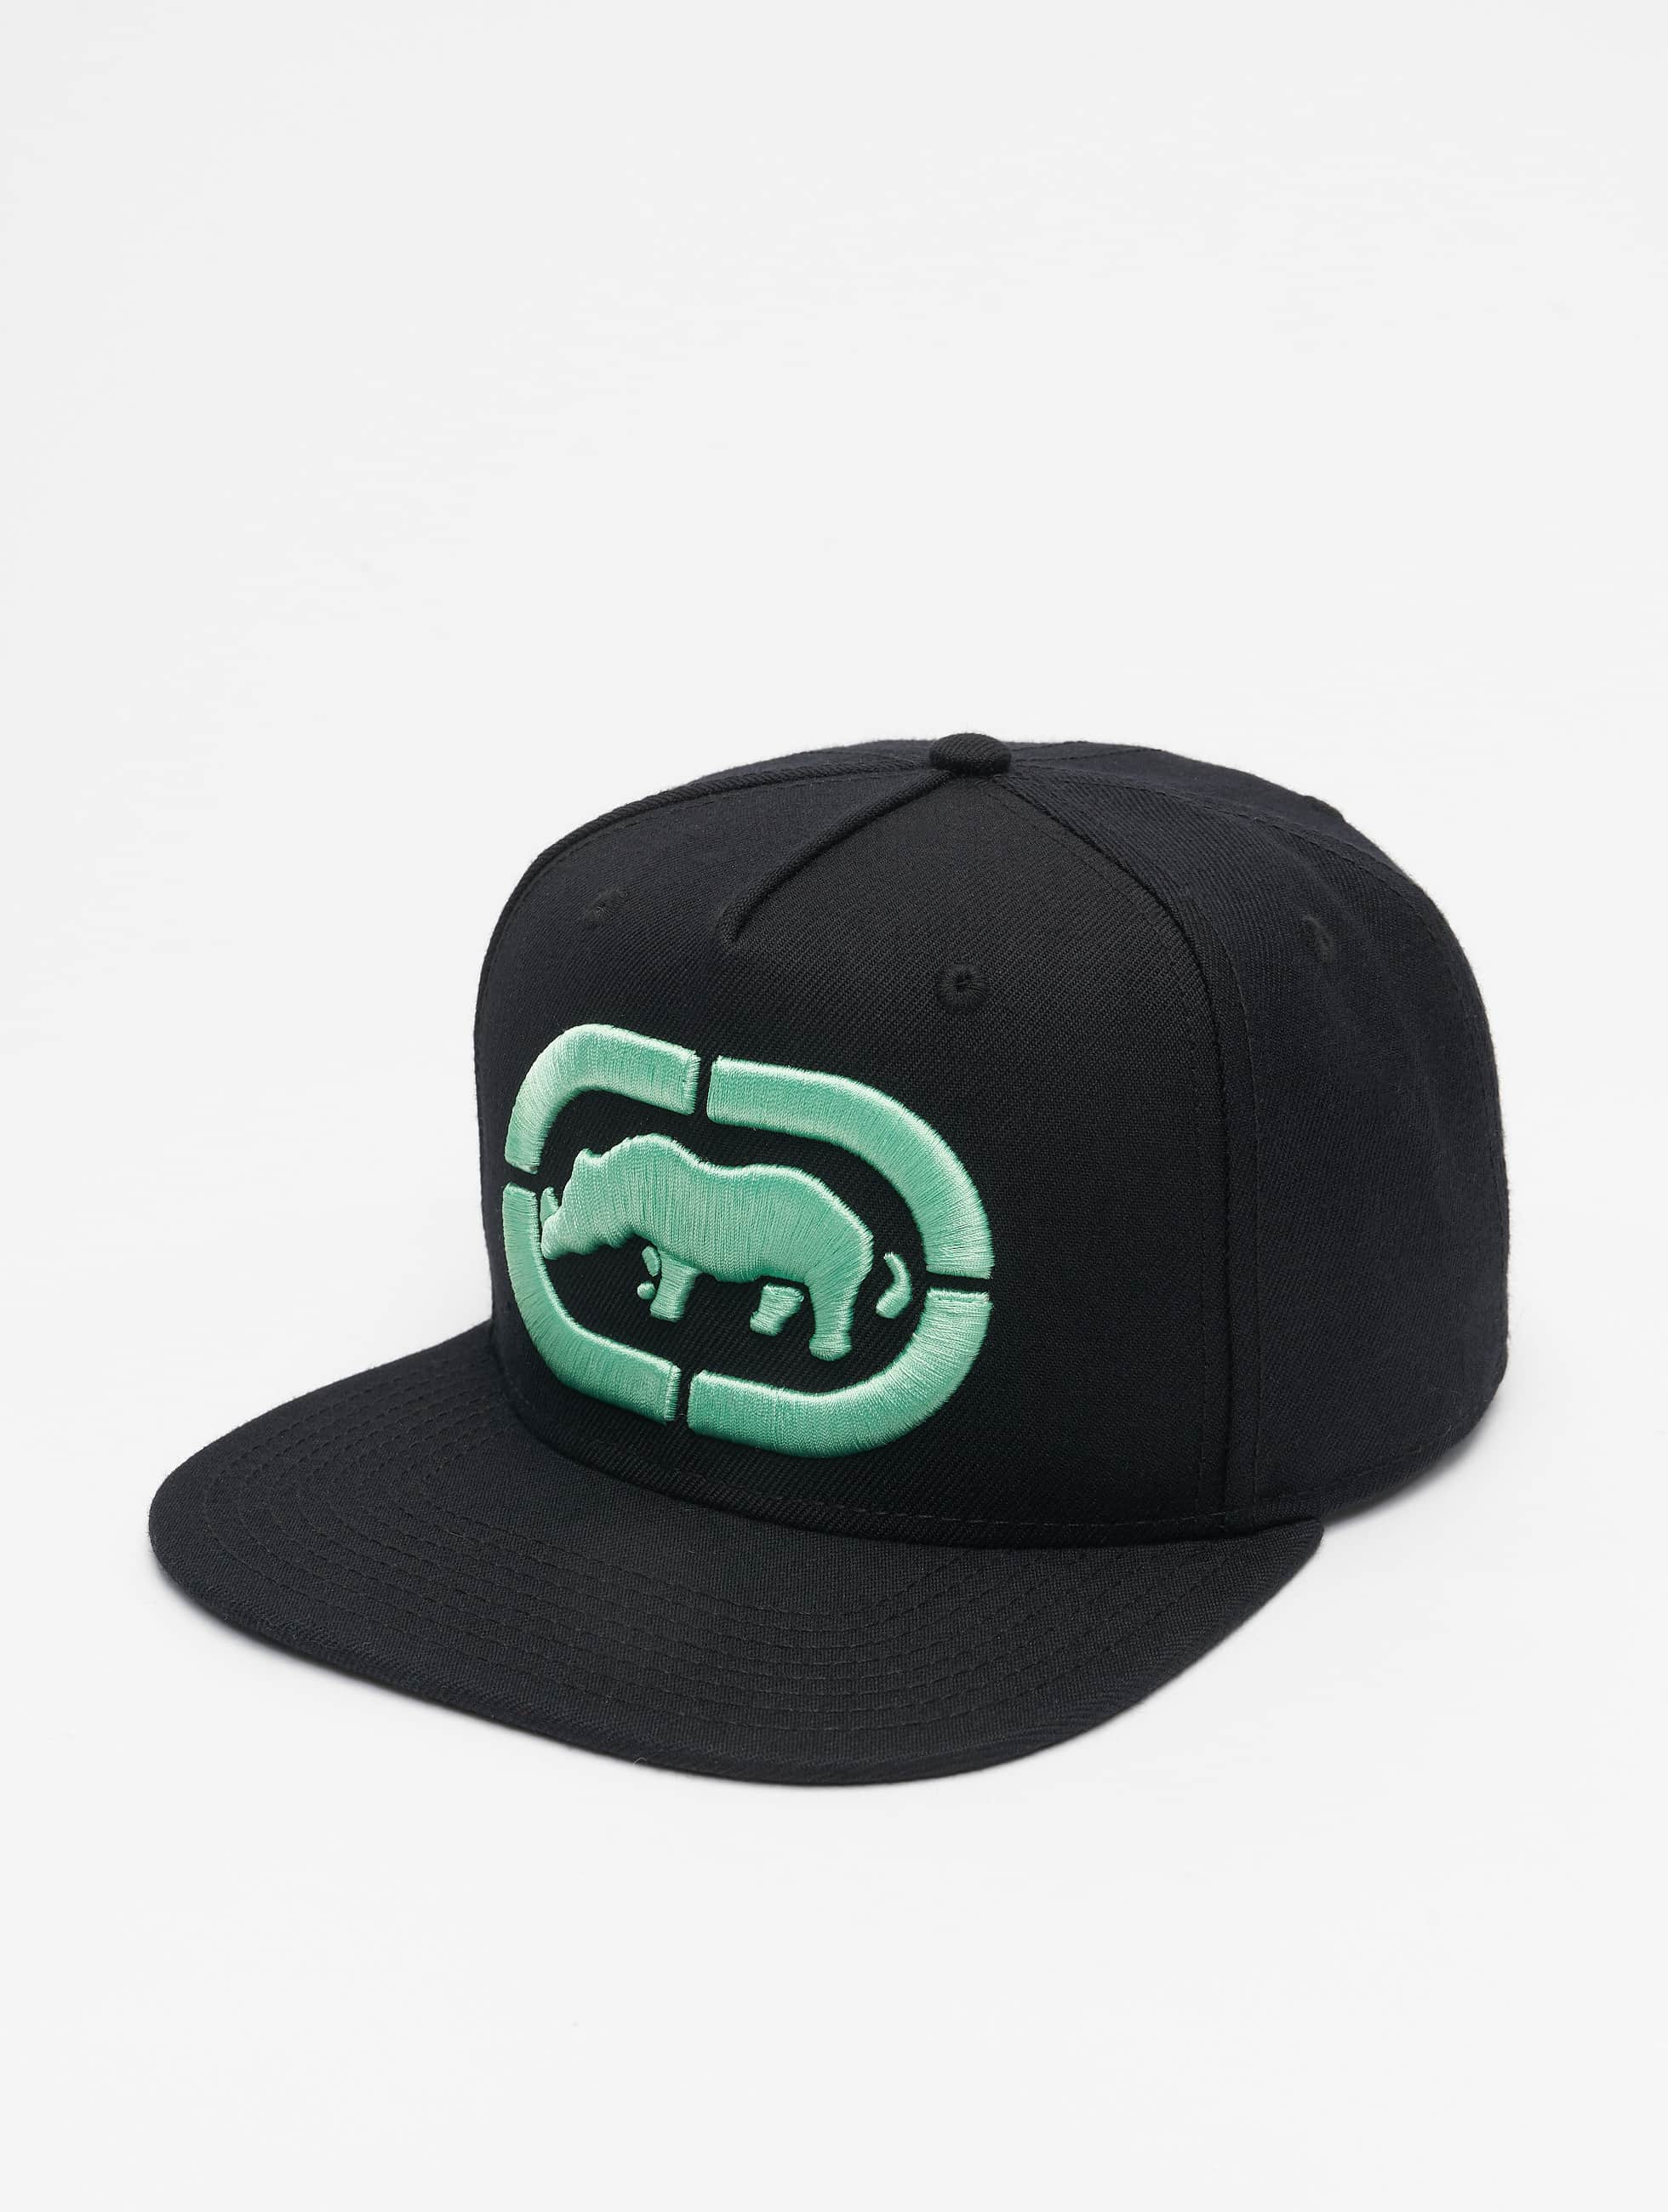 Ecko Unltd. / Snapback Cap Base in black Adjustable